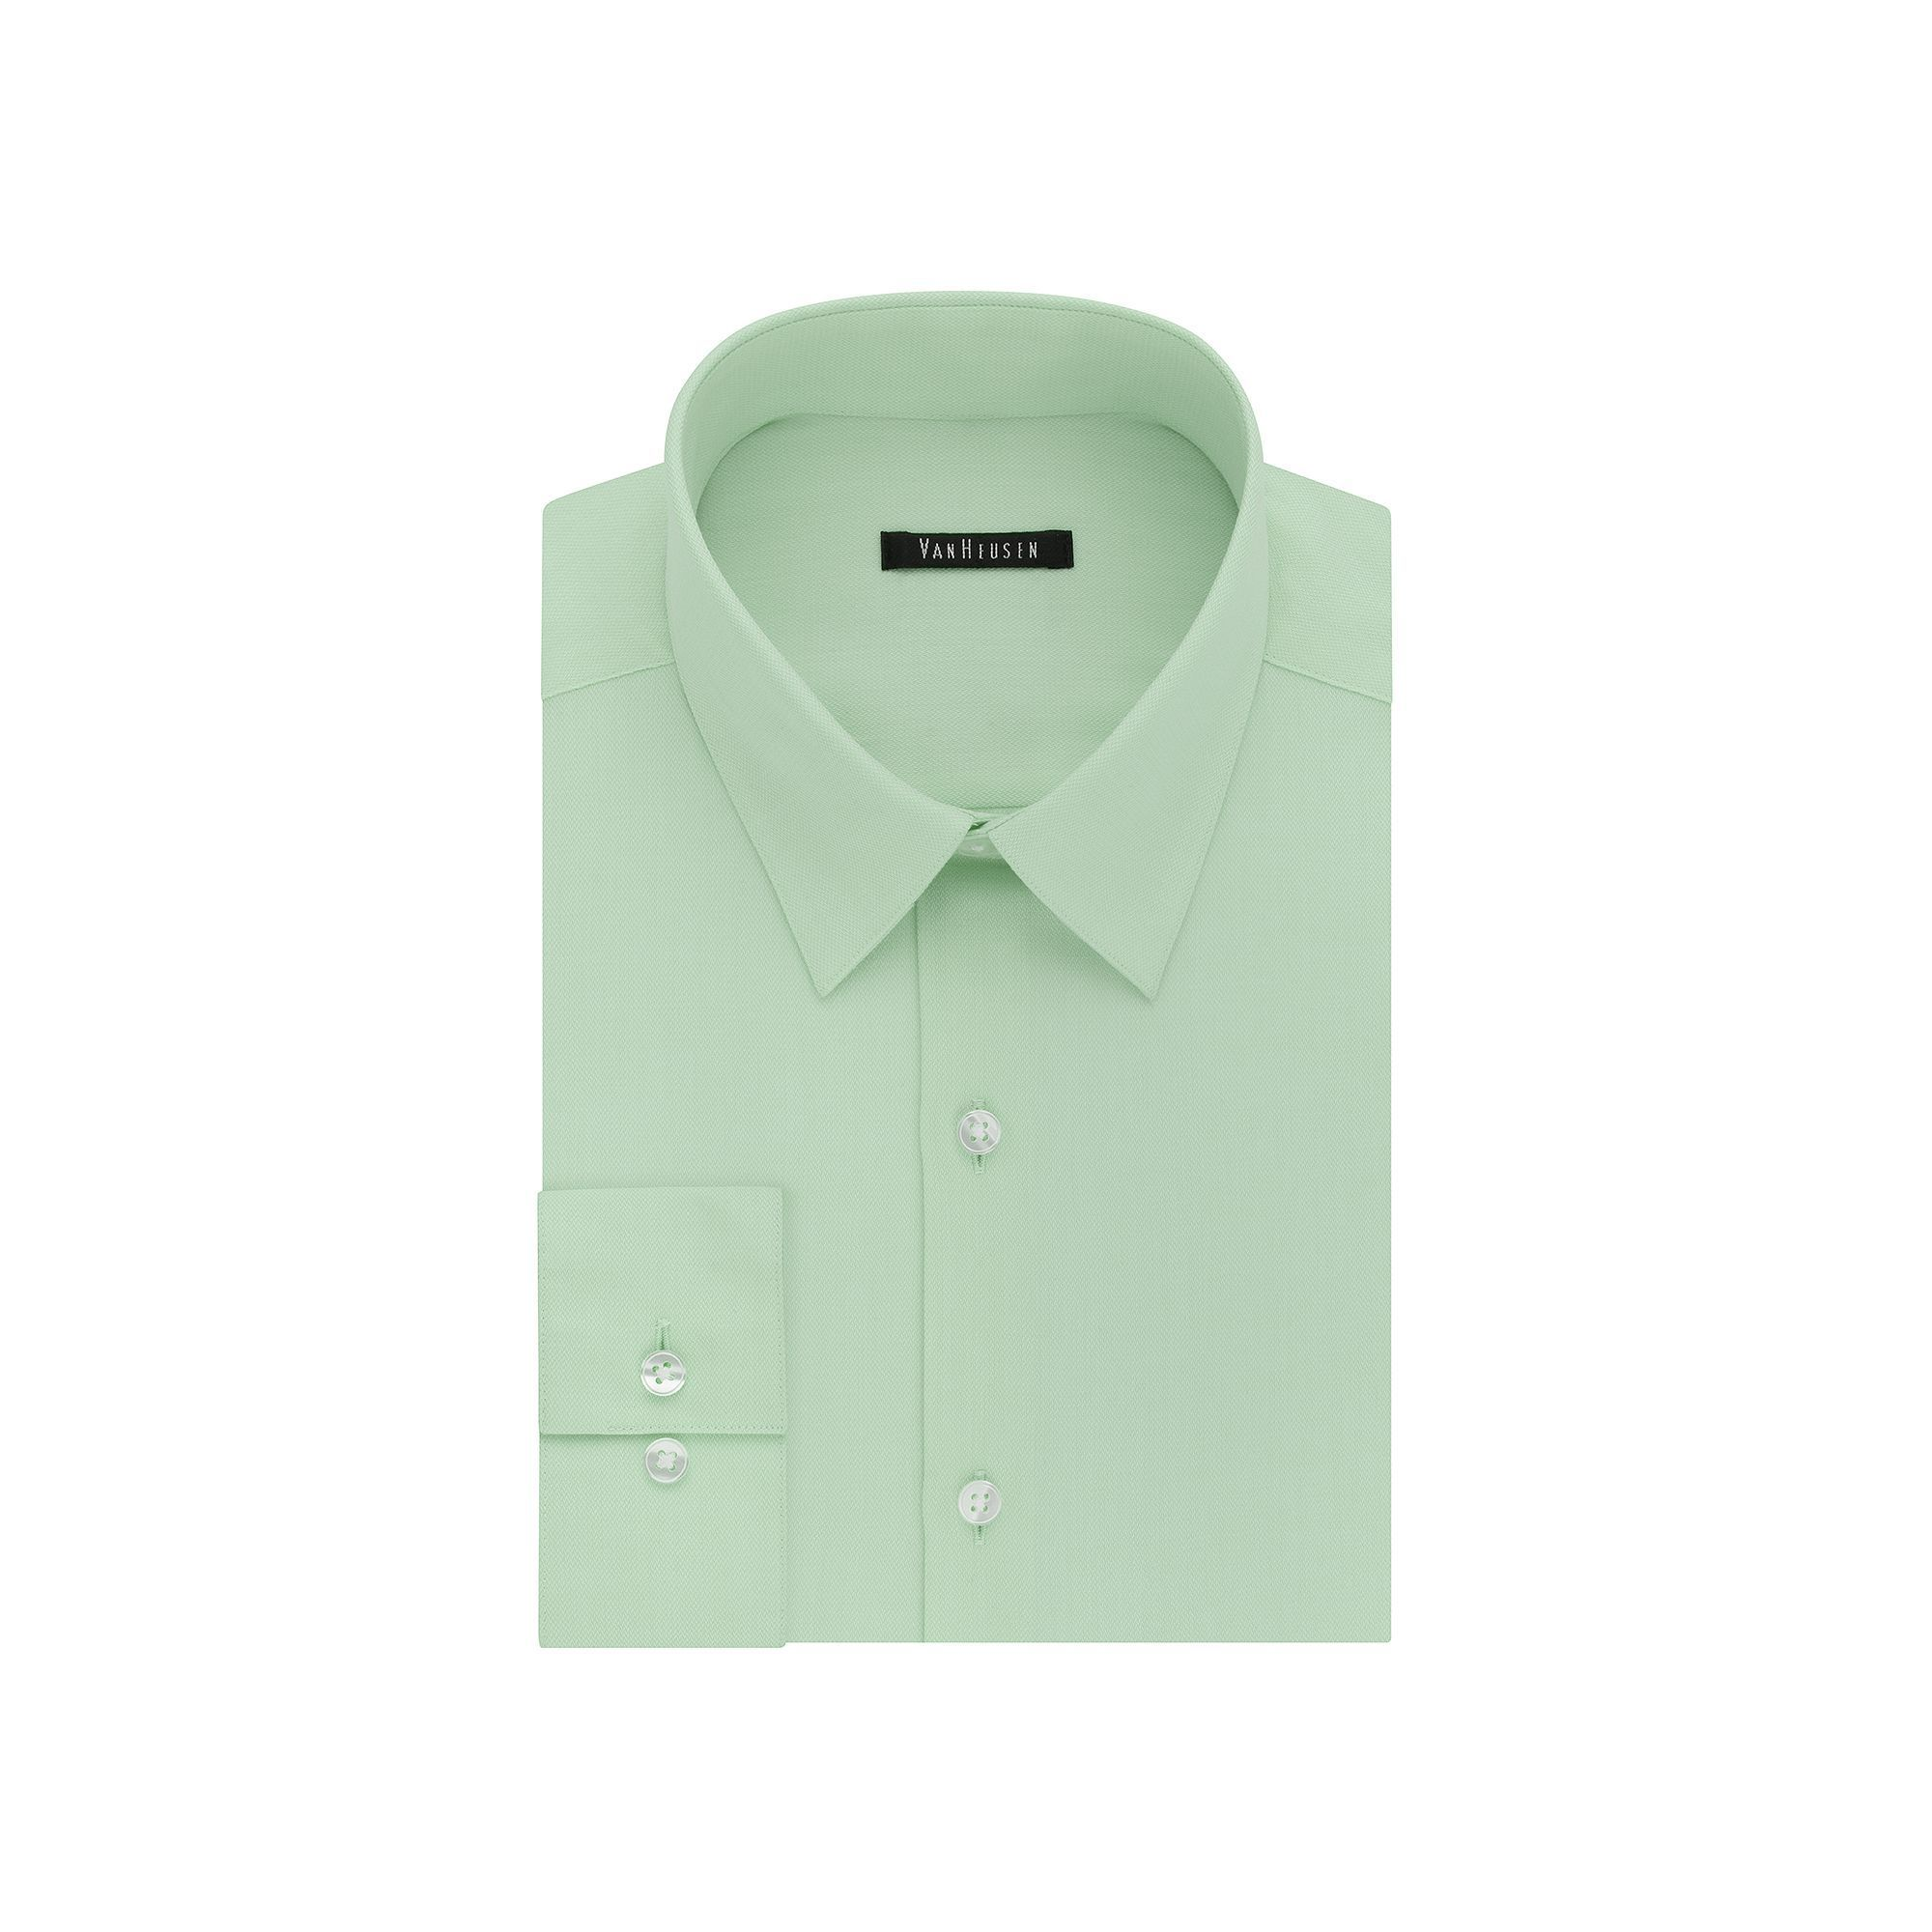 Mens Van Heusen Fresh Defense Slim Fit Dress Shirt Size 185 36